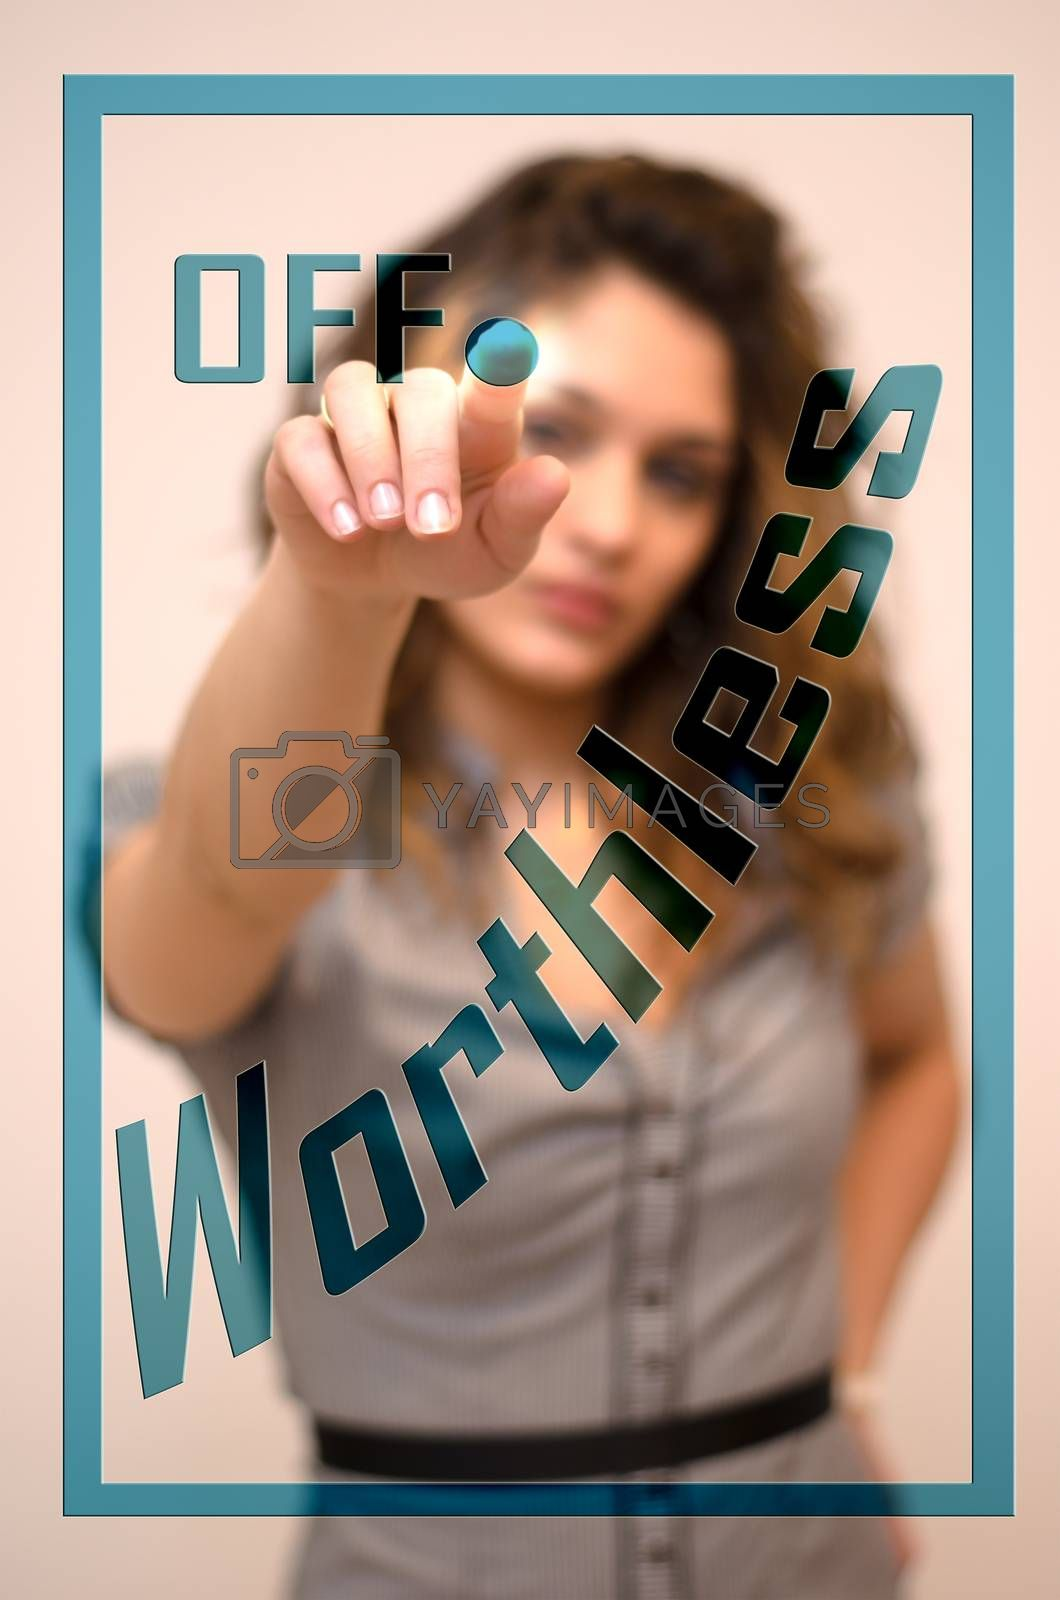 Royalty free image of woman turning off Worthless on panel by vepar5